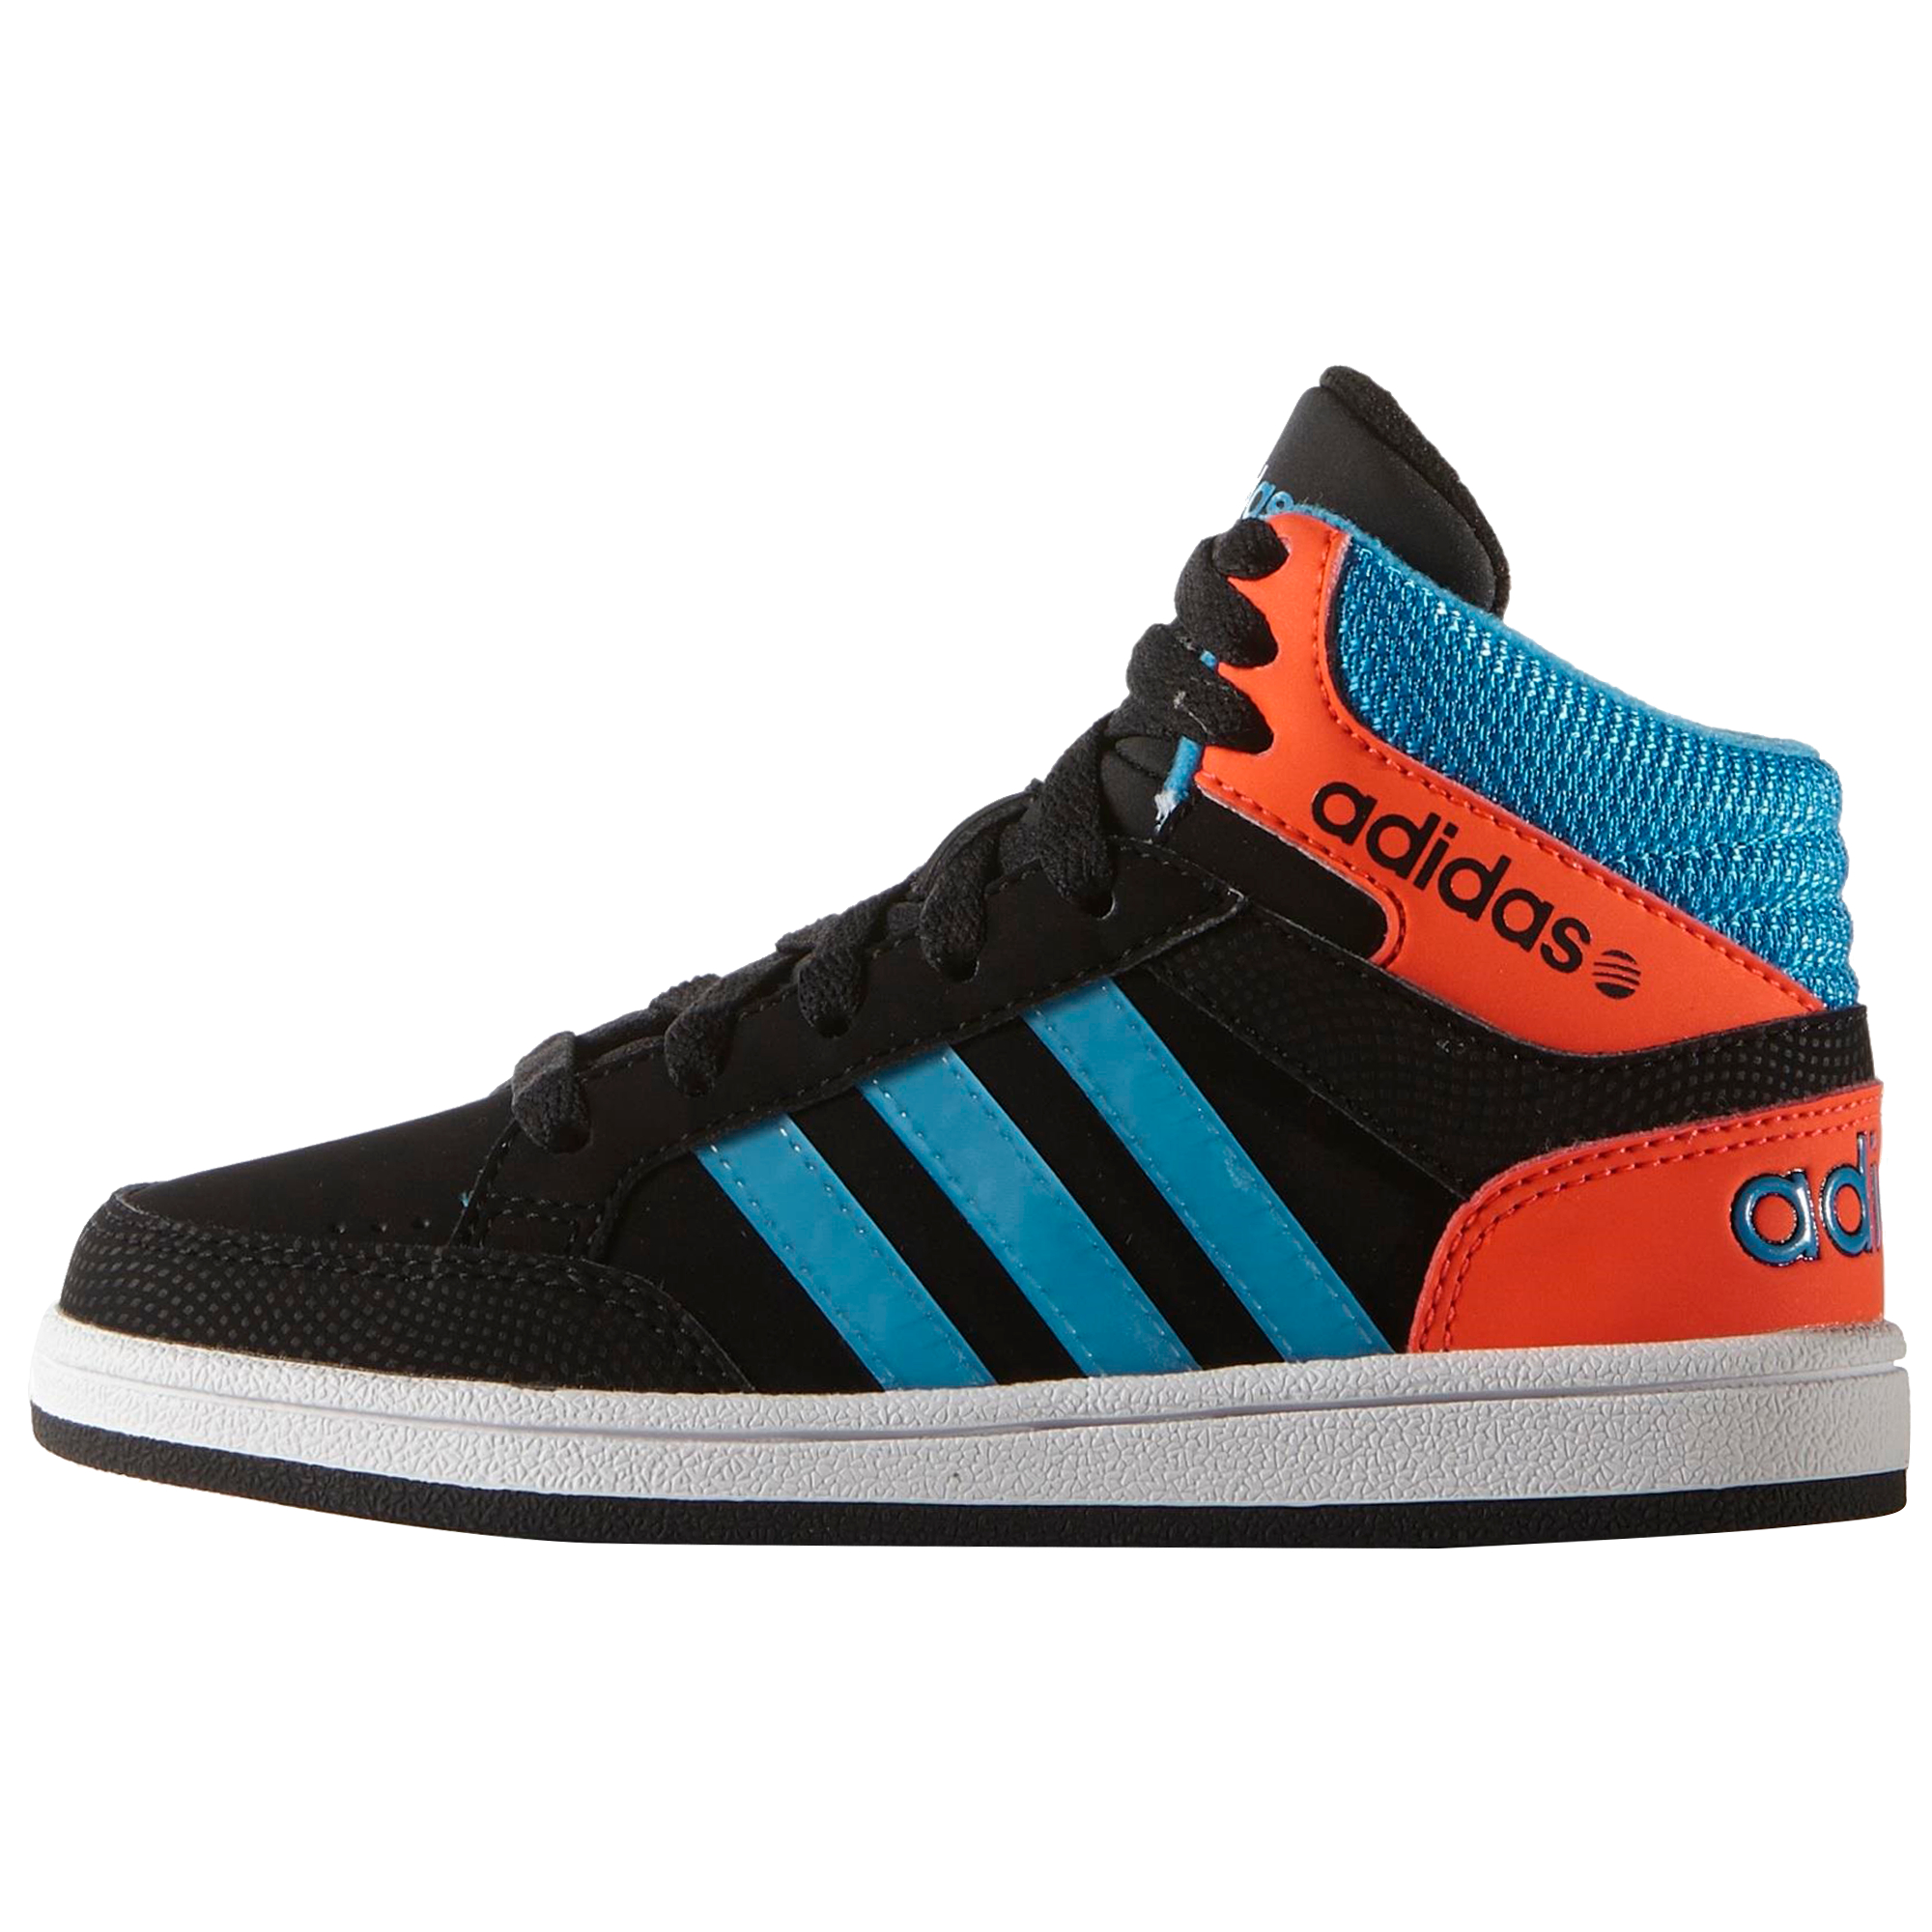 0234551f51a Encuentra Zapatos Adidas Ultra Boost-Ropa